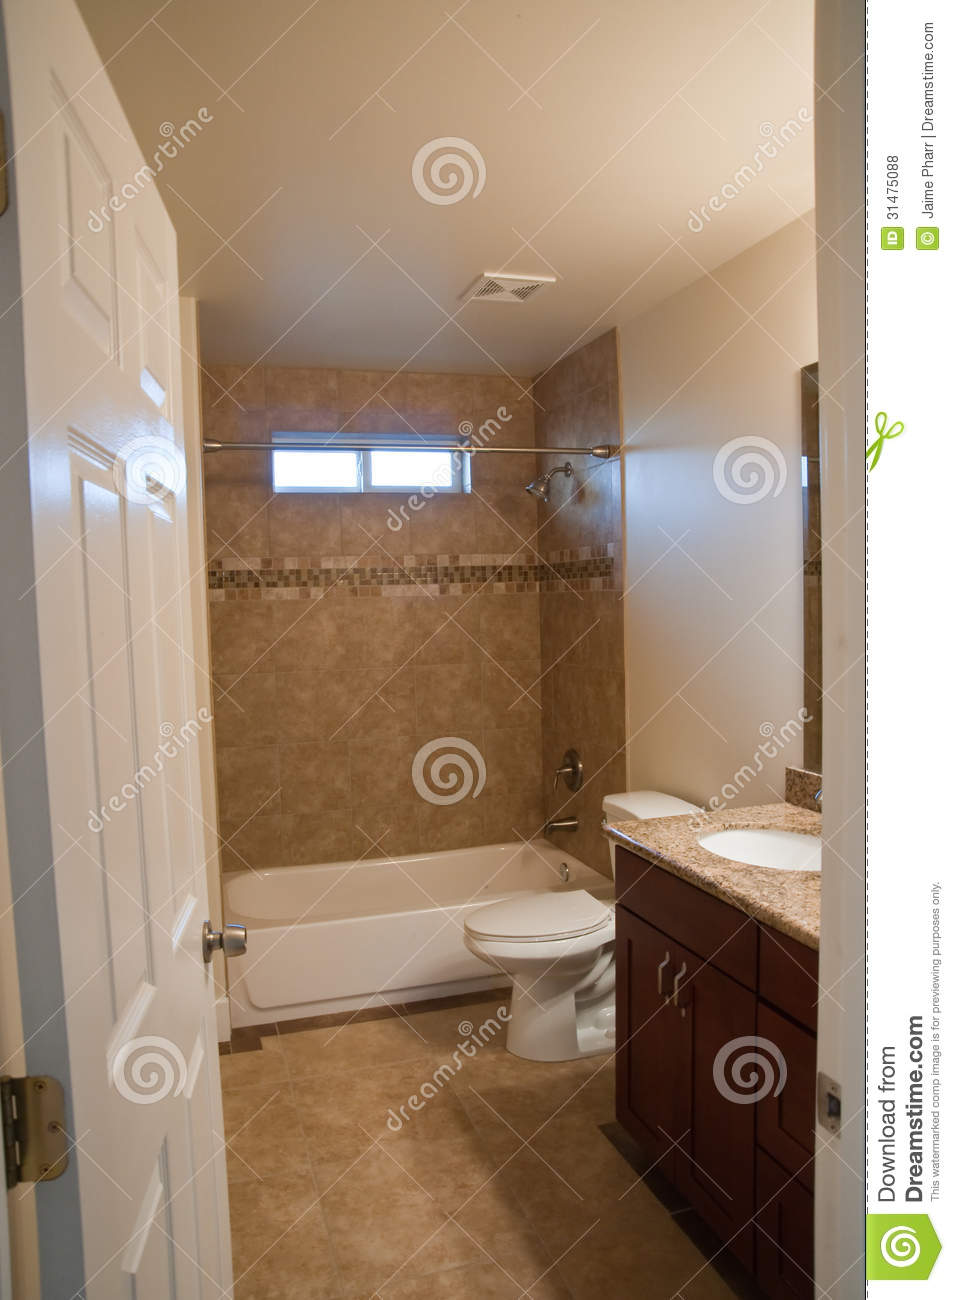 Bathroom Royalty Free Stock Photos Image 31475088